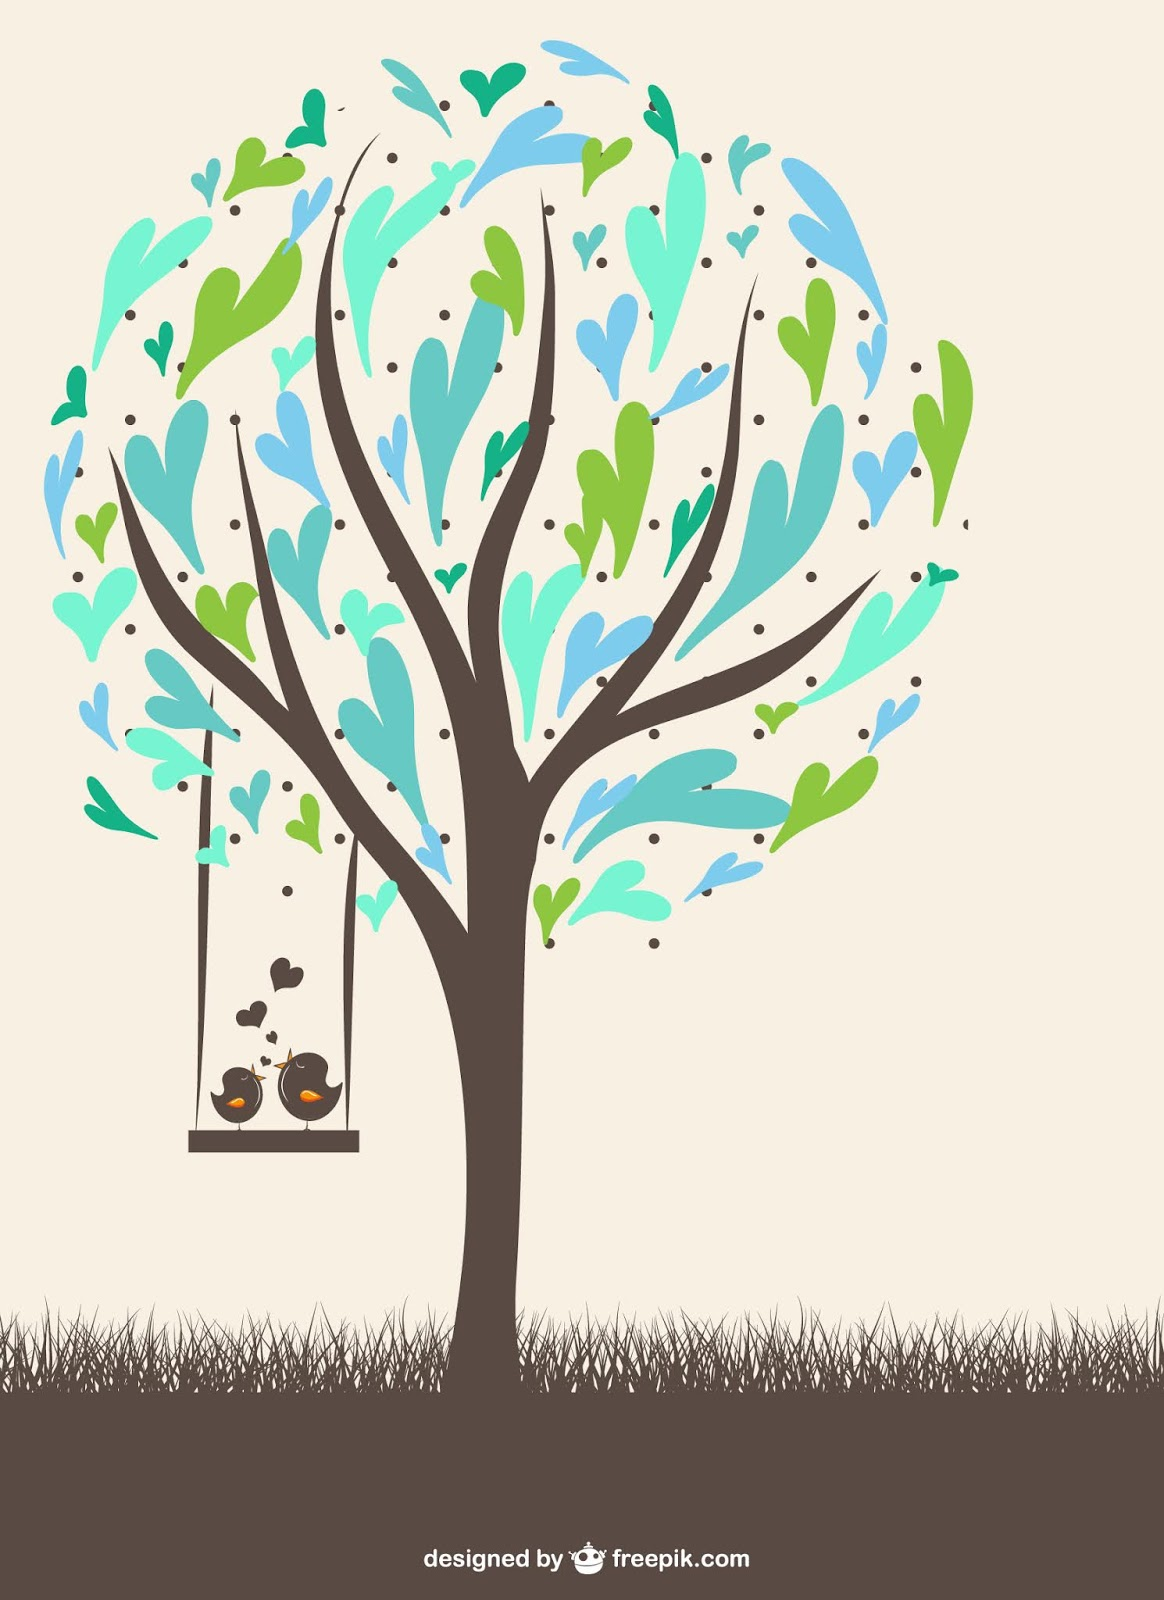 Tree Made Blue Green Hearts With Birds Free Download Vector CDR, AI, EPS and PNG Formats